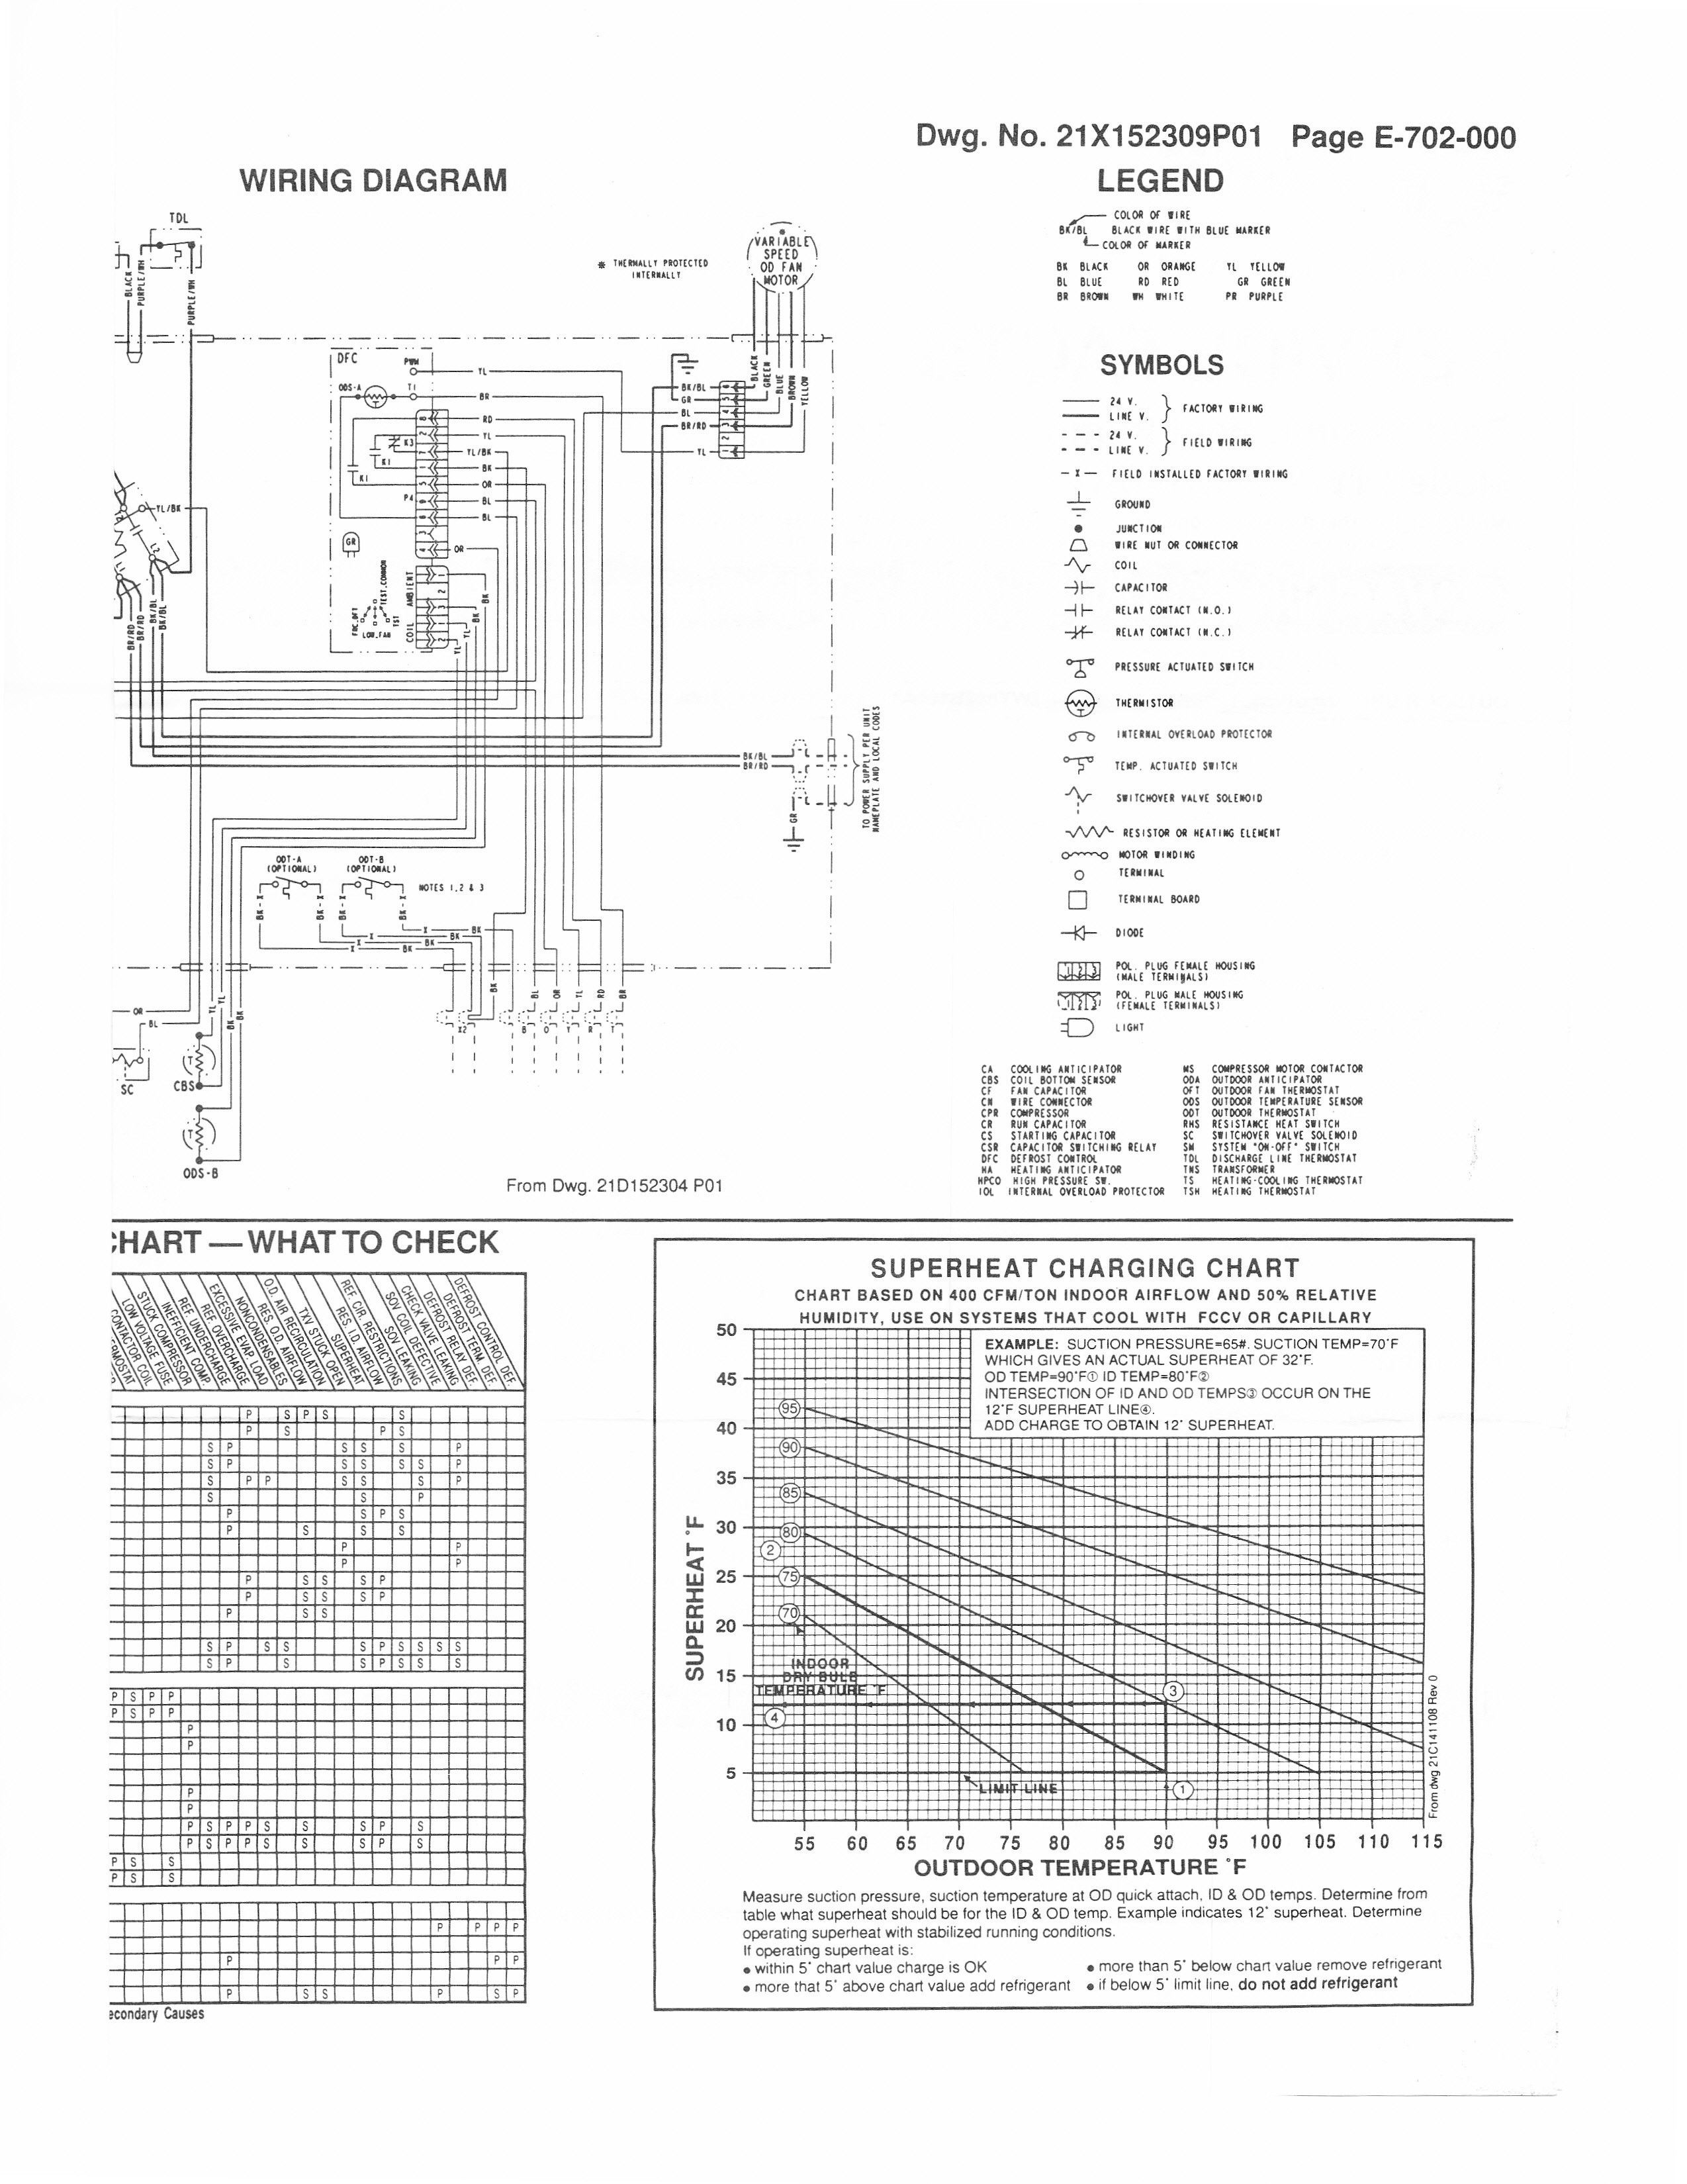 New Trane Electric Furnace Wiring Diagram diagram